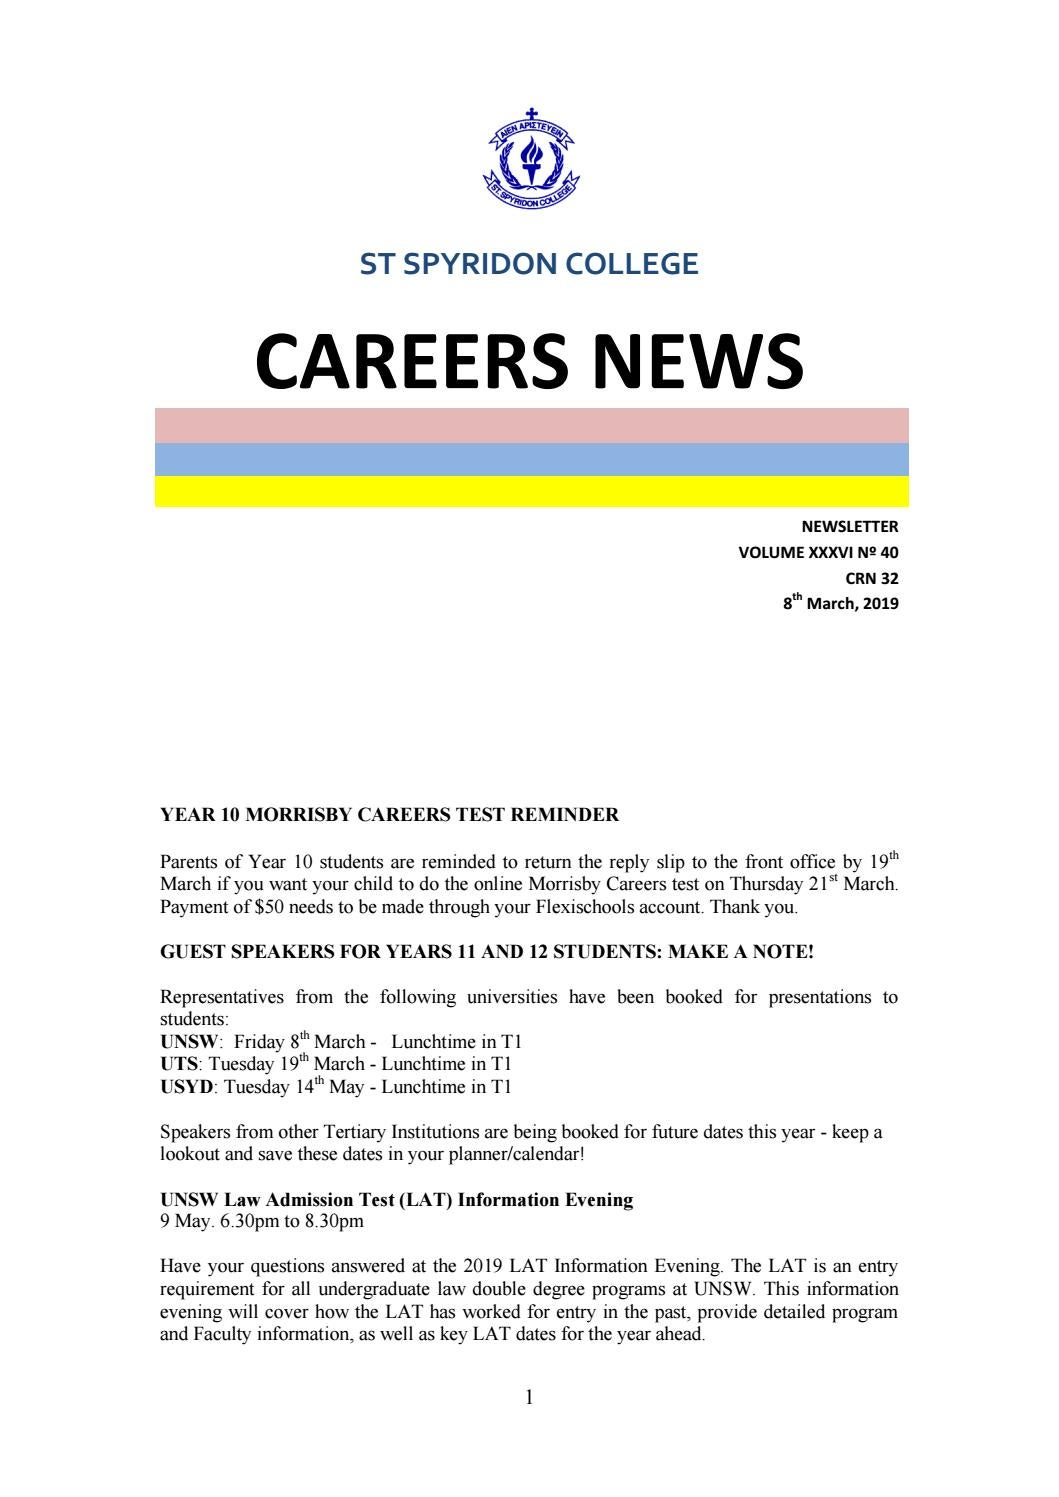 SSC Careers News 03 2019 By ST Spyridon College